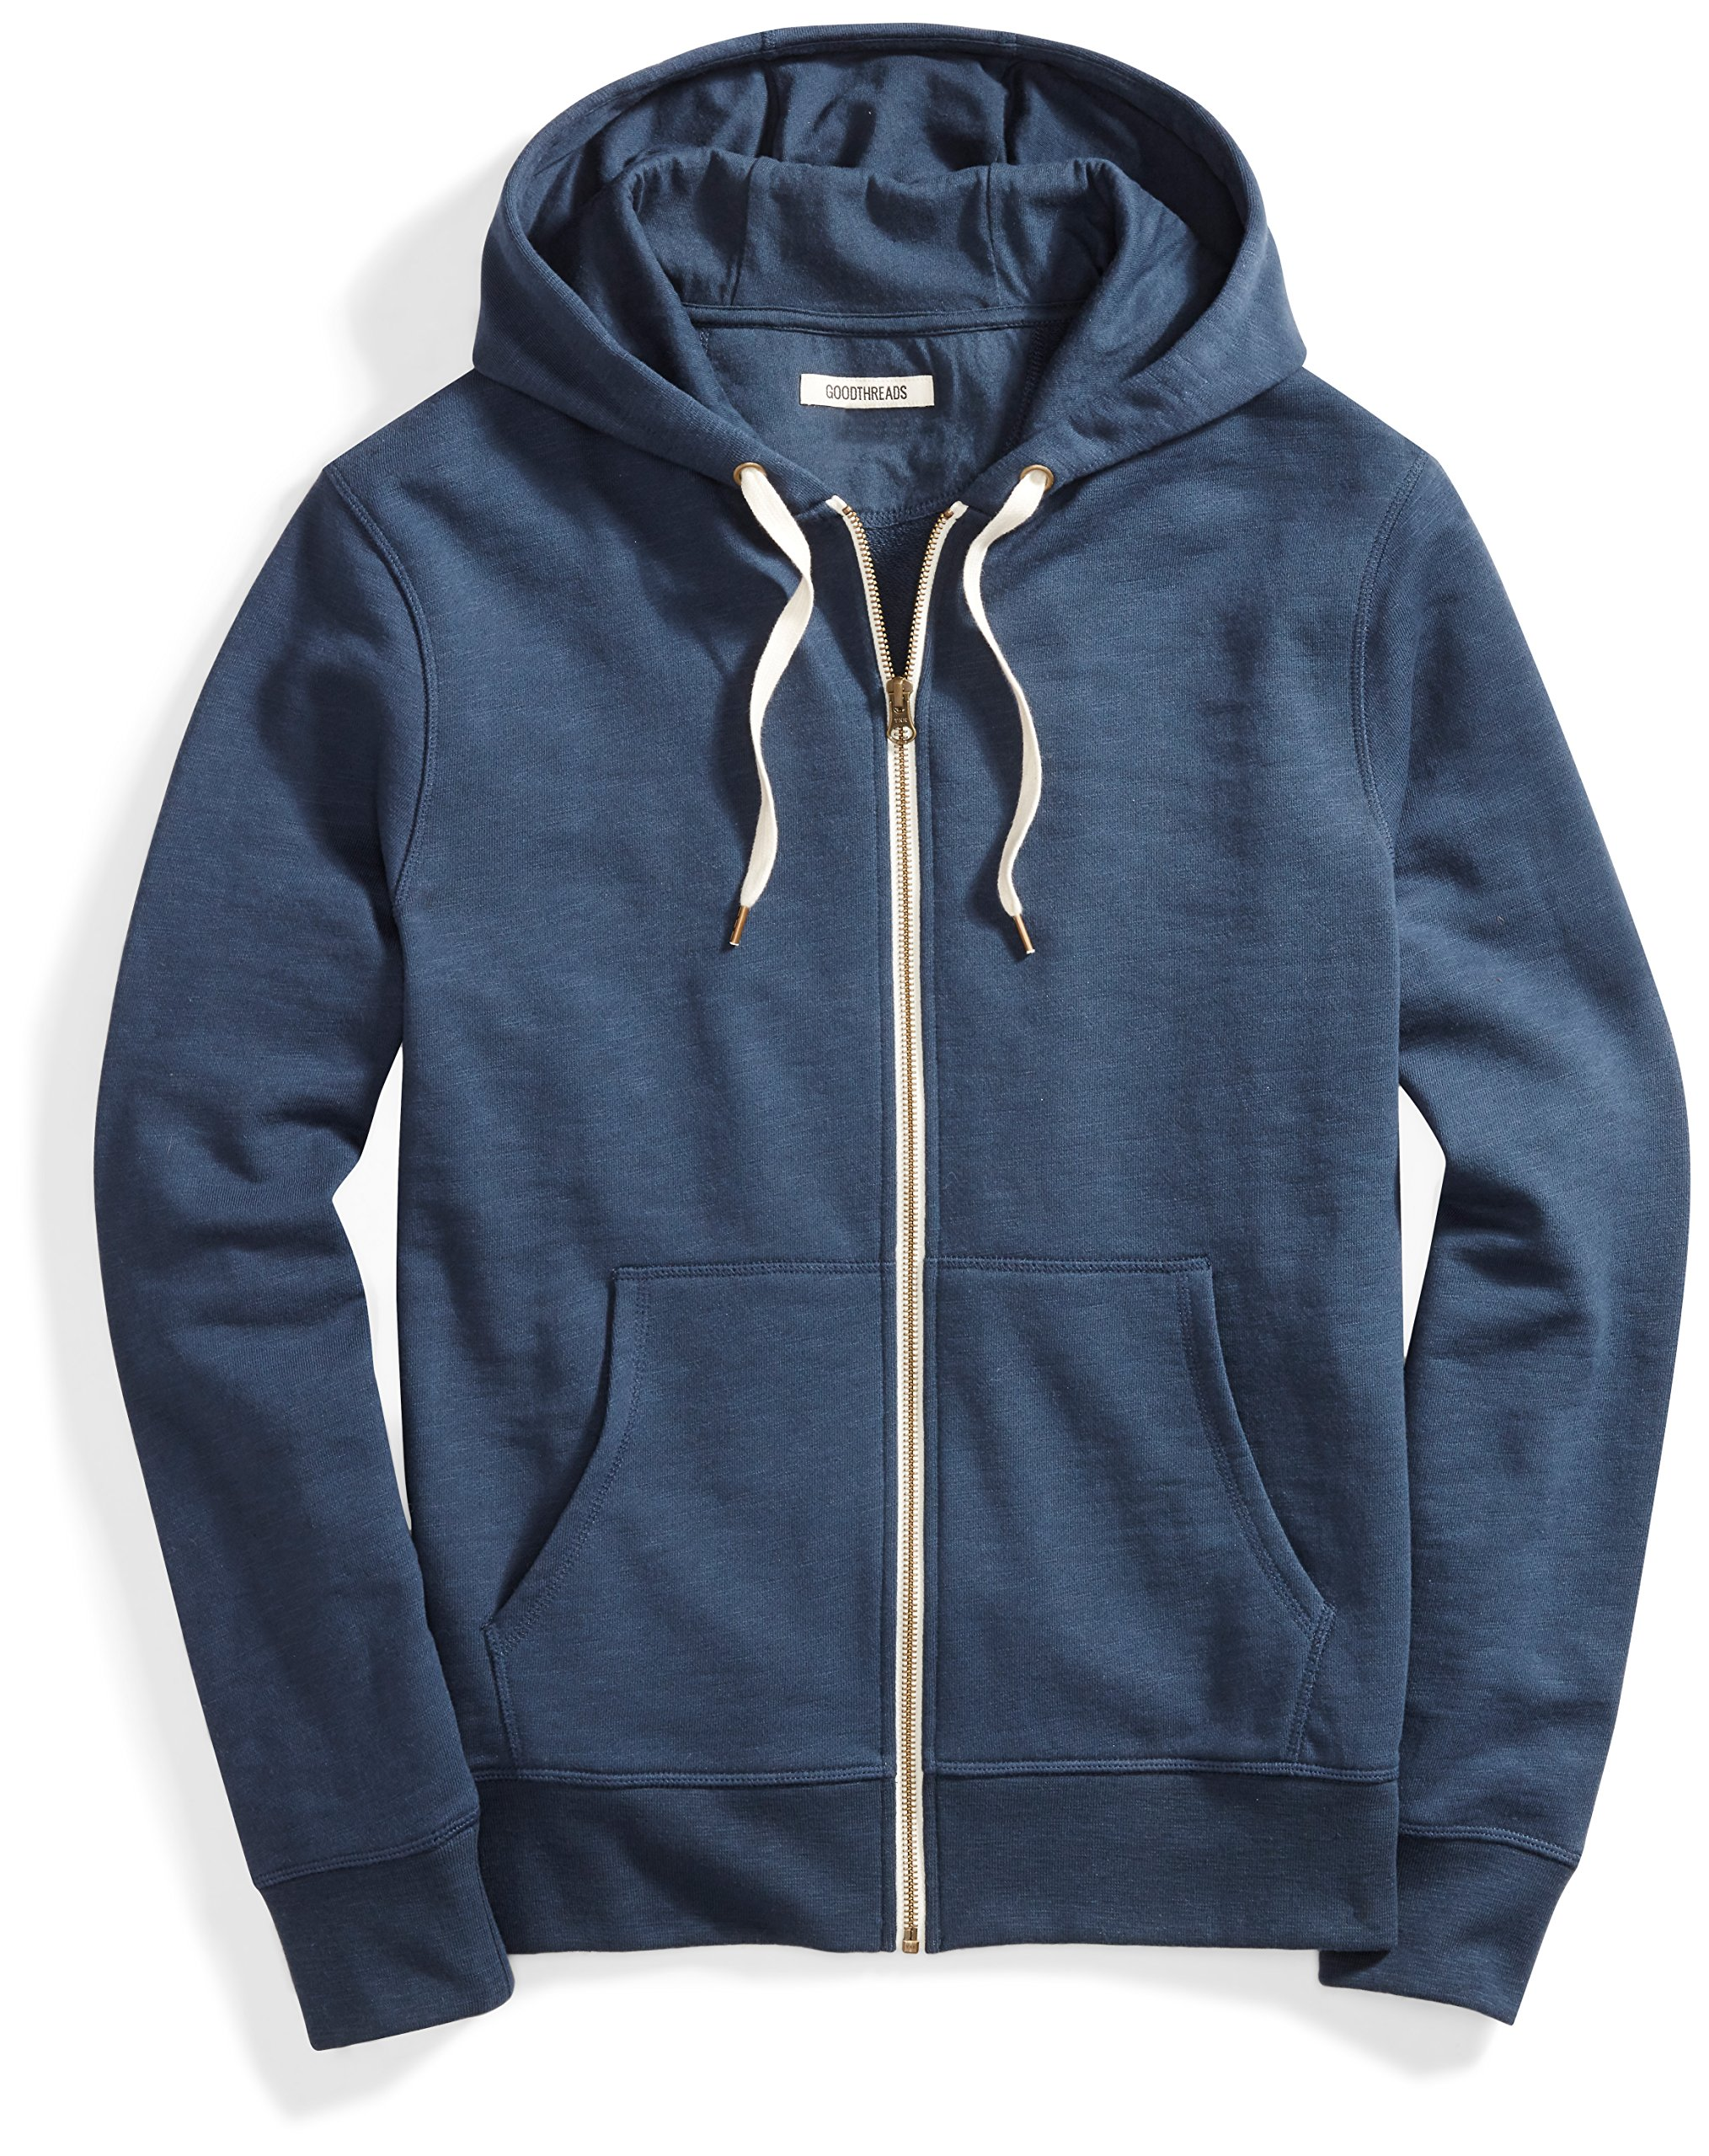 Goodthreads Men's French Terry Full-Zip Hoodie, Navy Eclipse, Large by Goodthreads (Image #1)